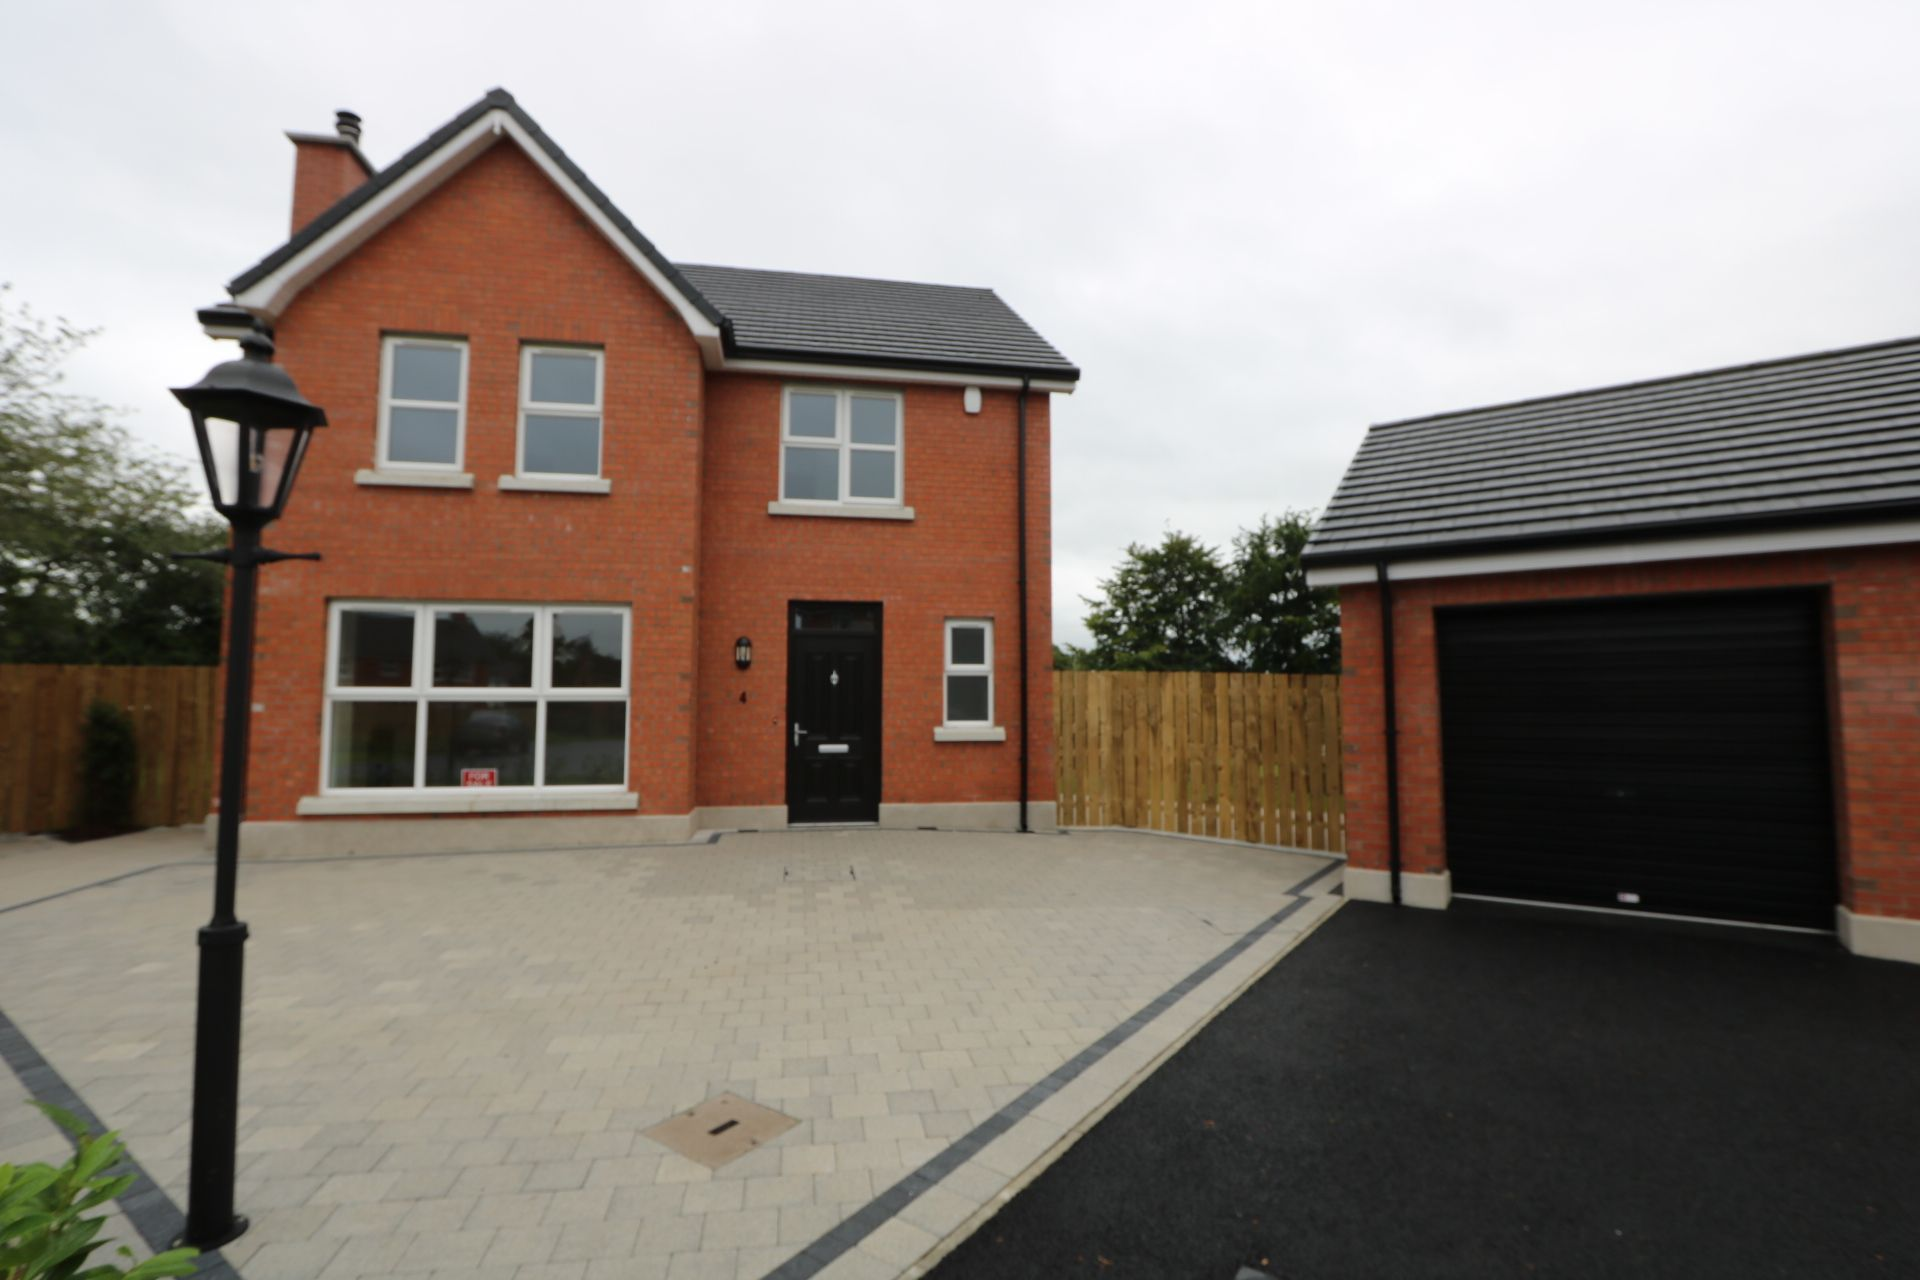 4 bedroom detached house For Sale in Antrim - Photograph 3